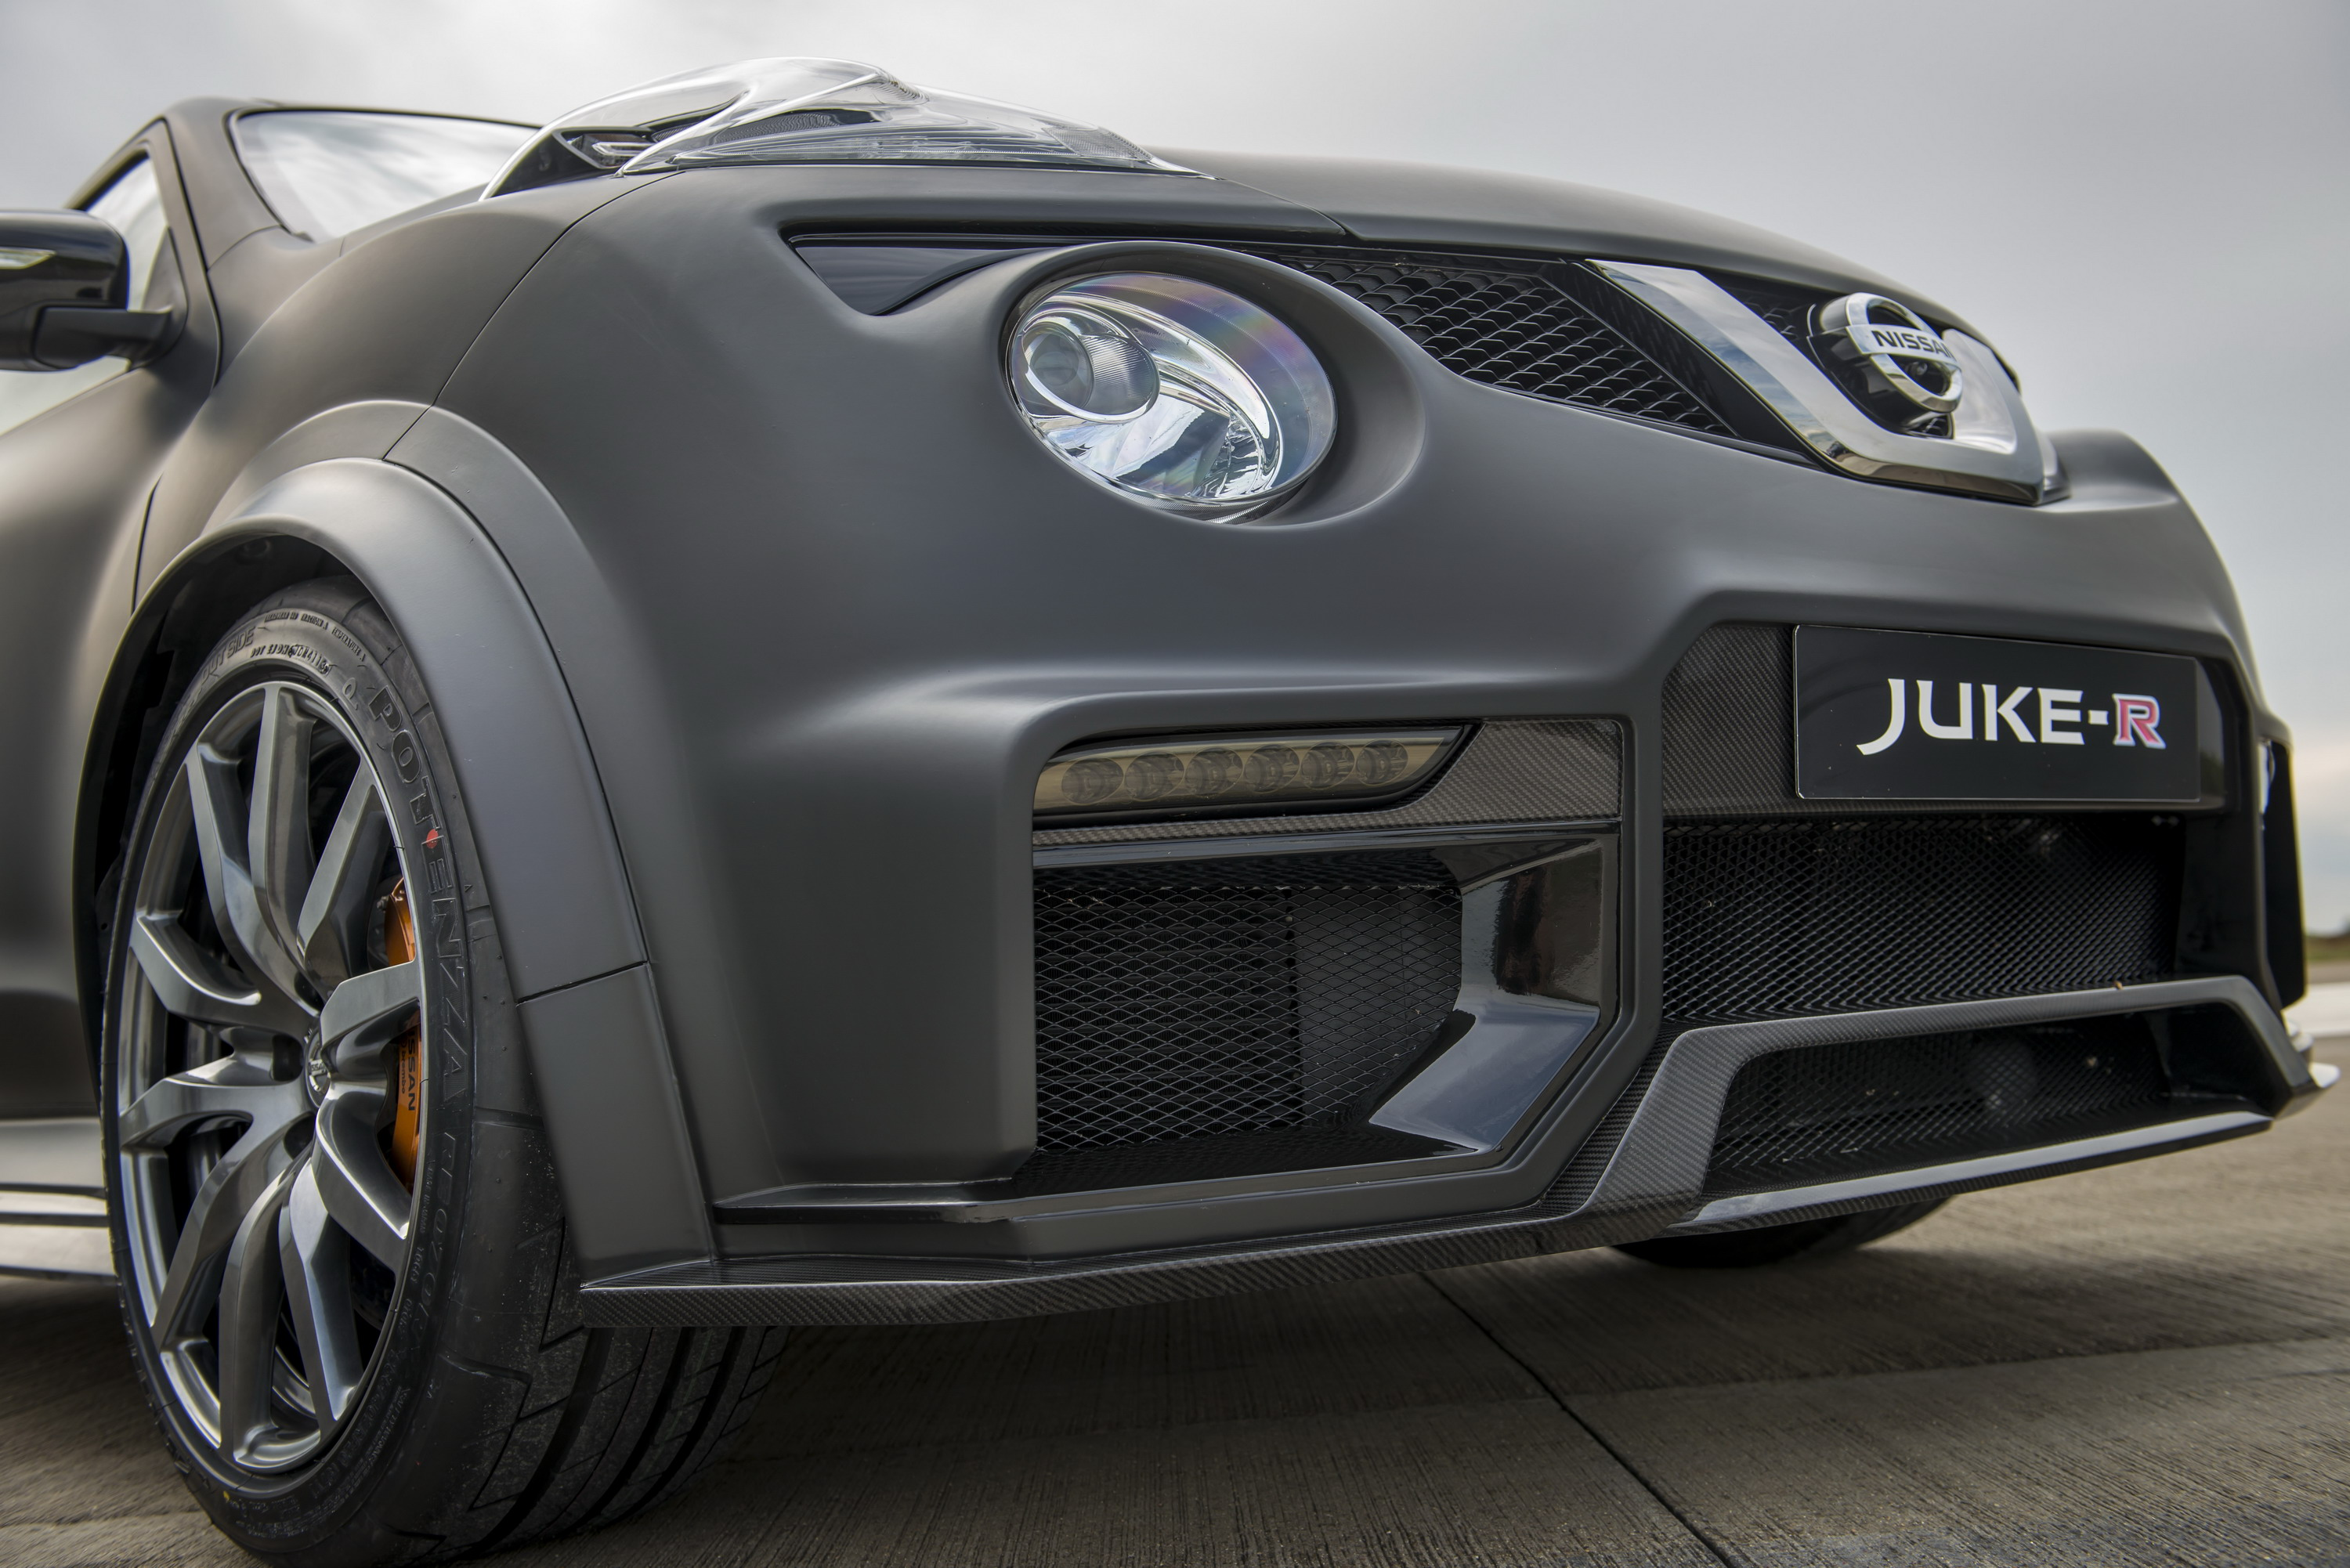 2016 Nissan Juke R 2 0 Concept Review Top Speed